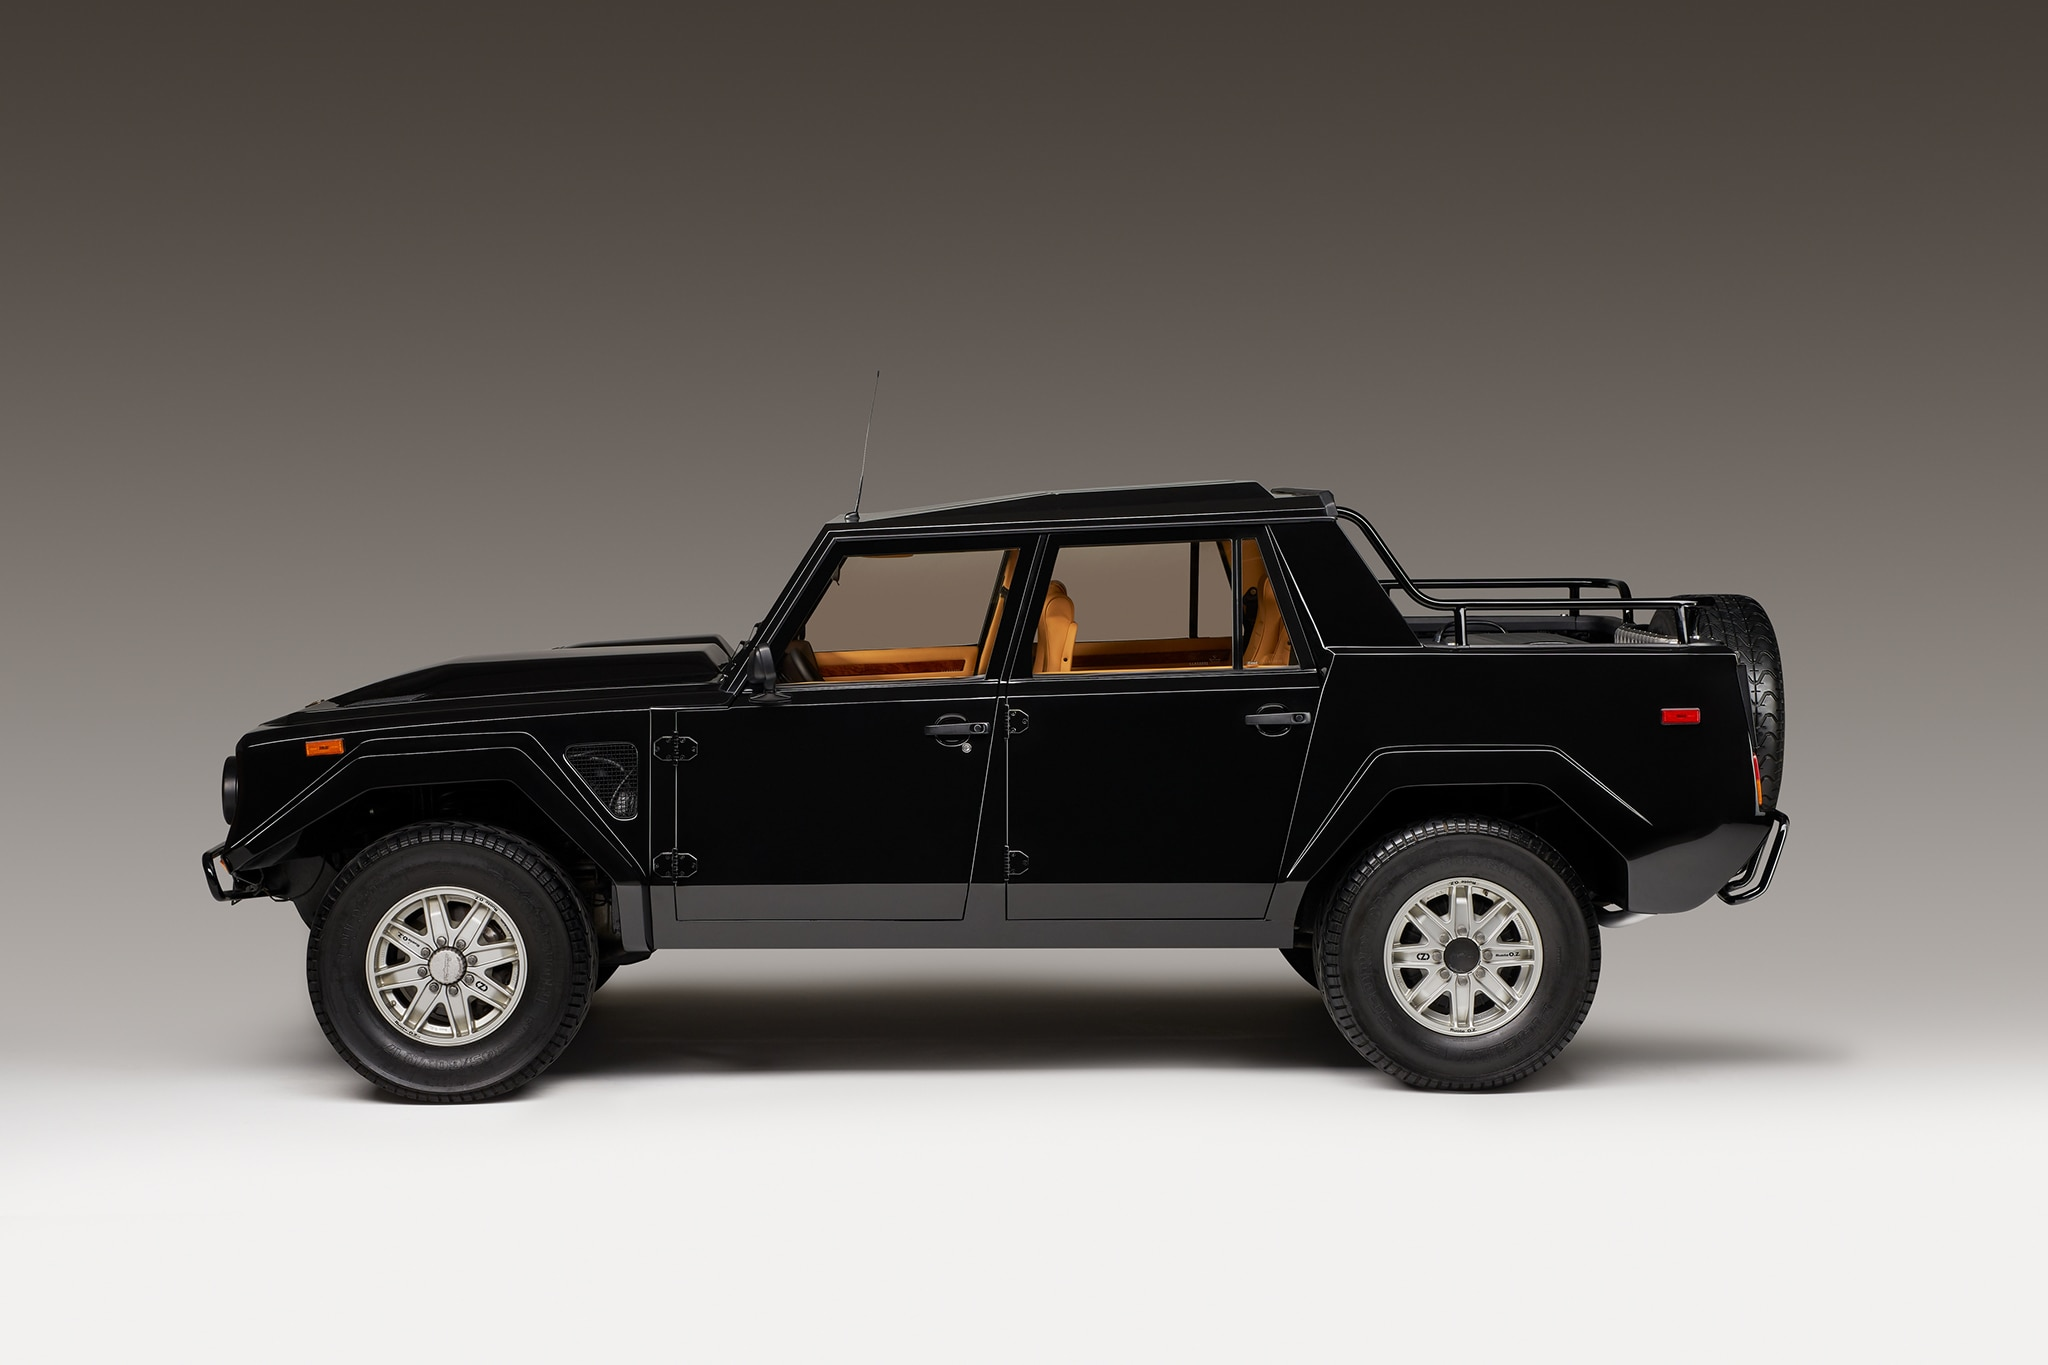 1986 1993 Lamborghini Lm002 Luxury Suv Review